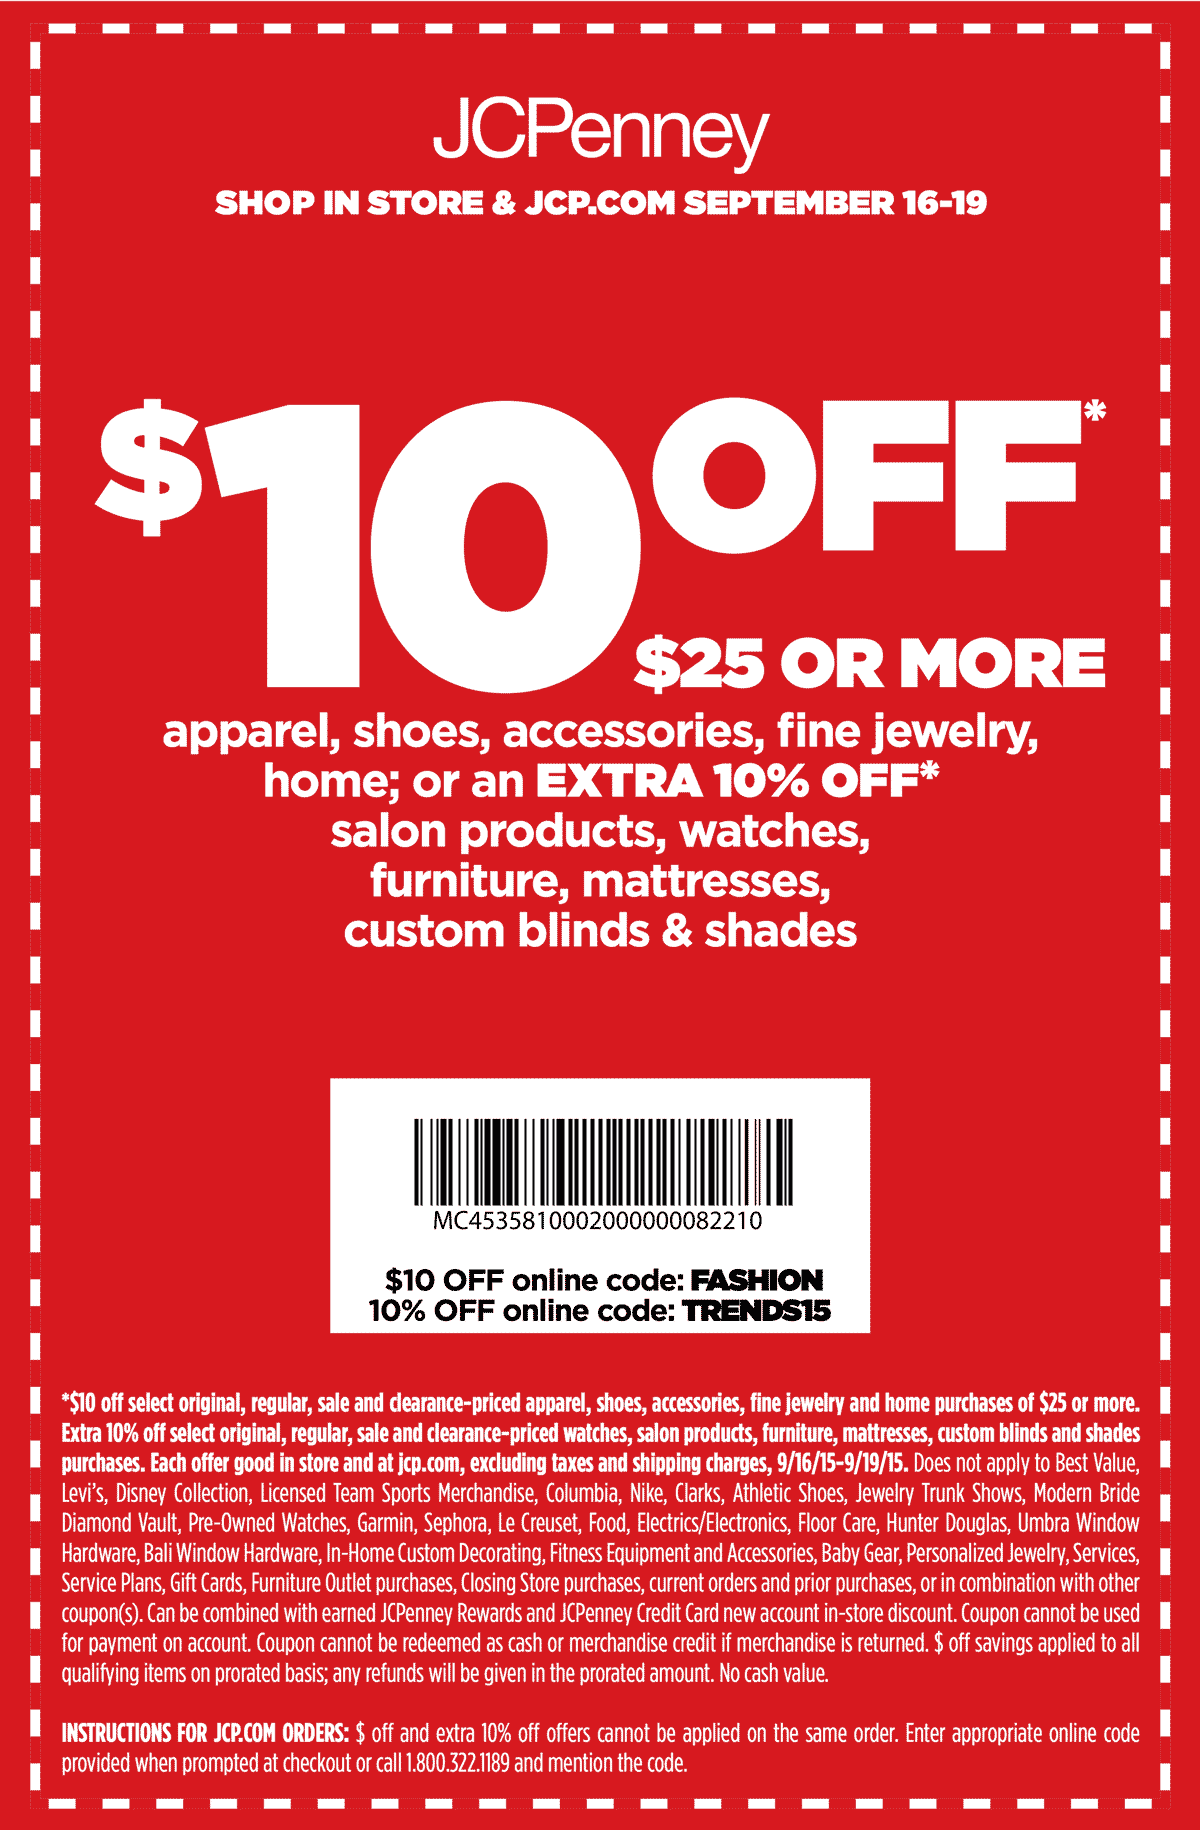 JCPenney Coupon January 2017 $10 off $25 at JCPenney, or online via promo code FASHION